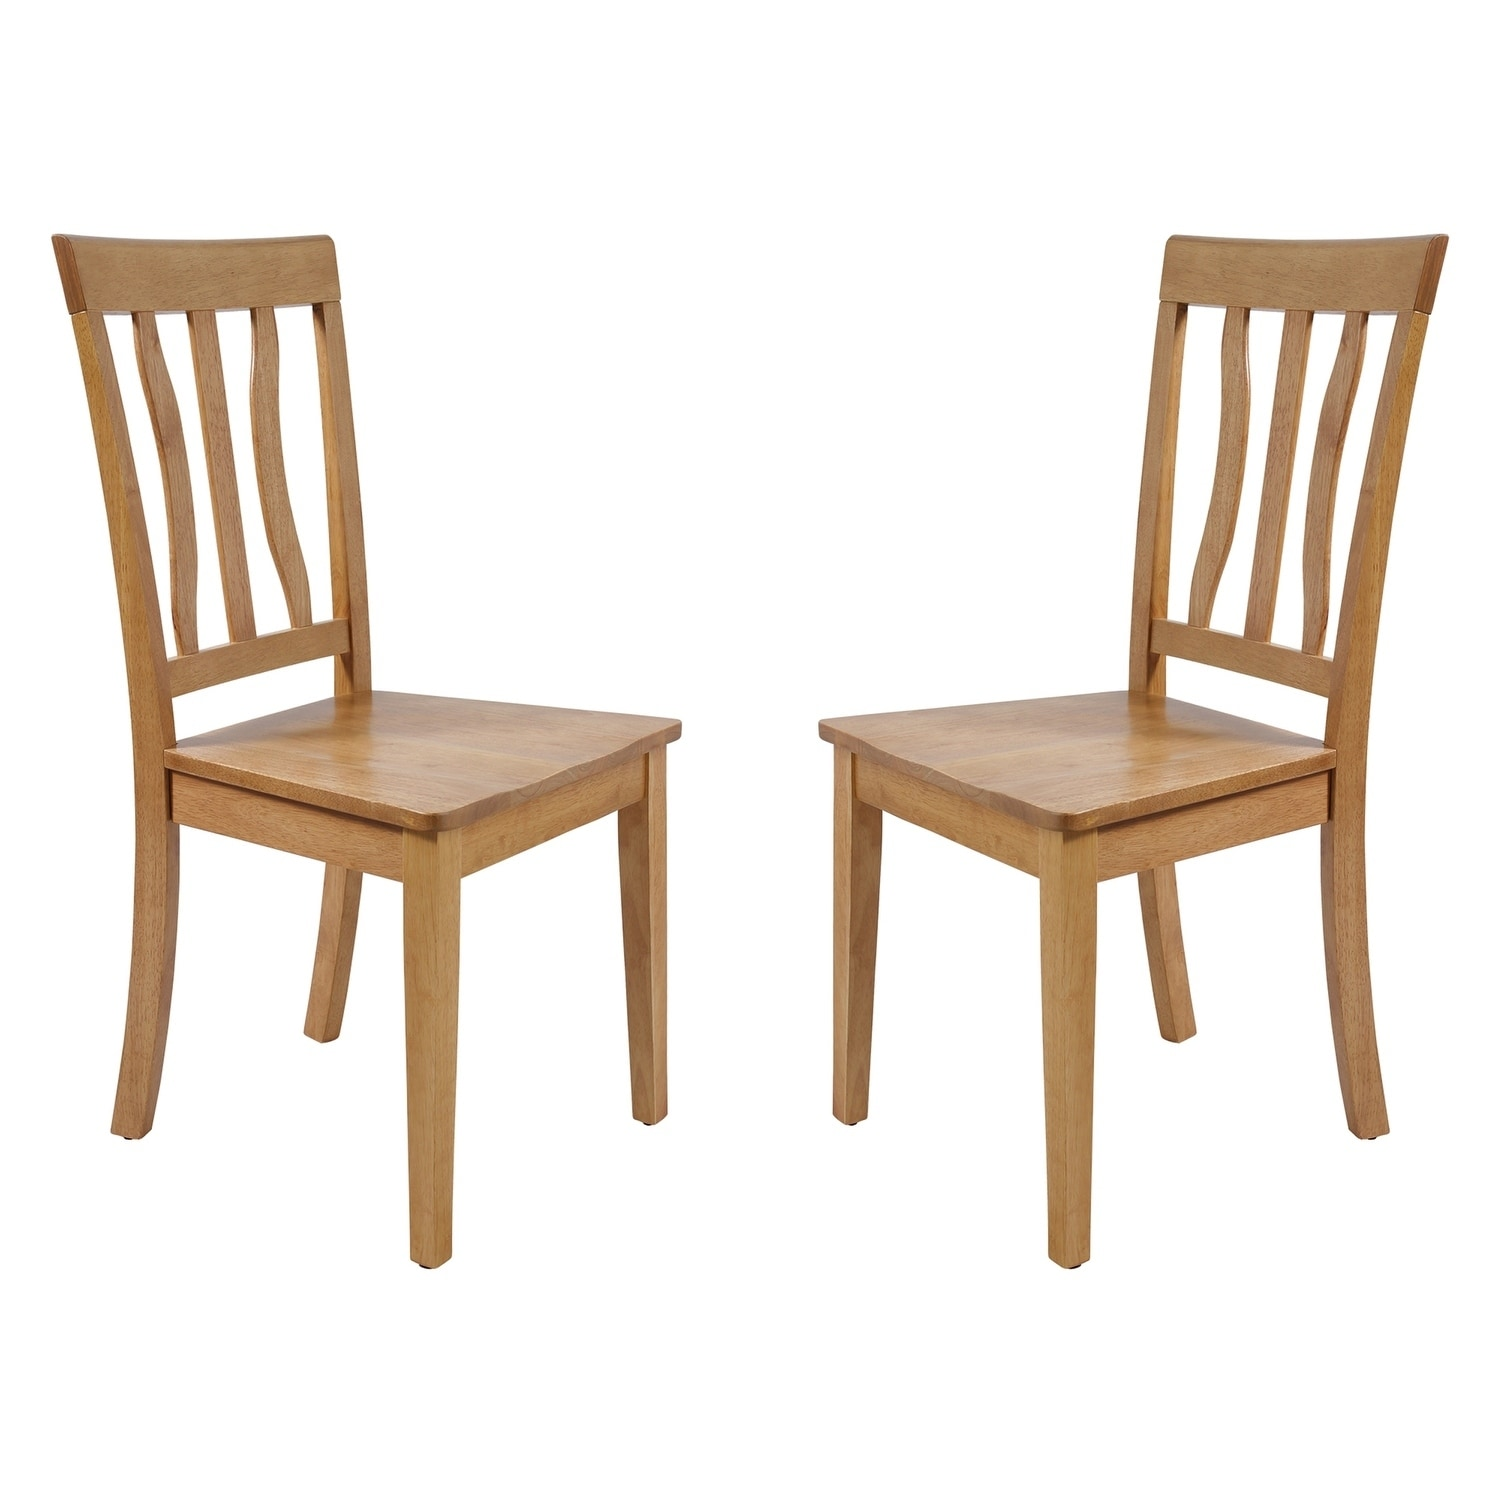 sturdy kitchen chairs white ceremony solid wood dining chair modern oak